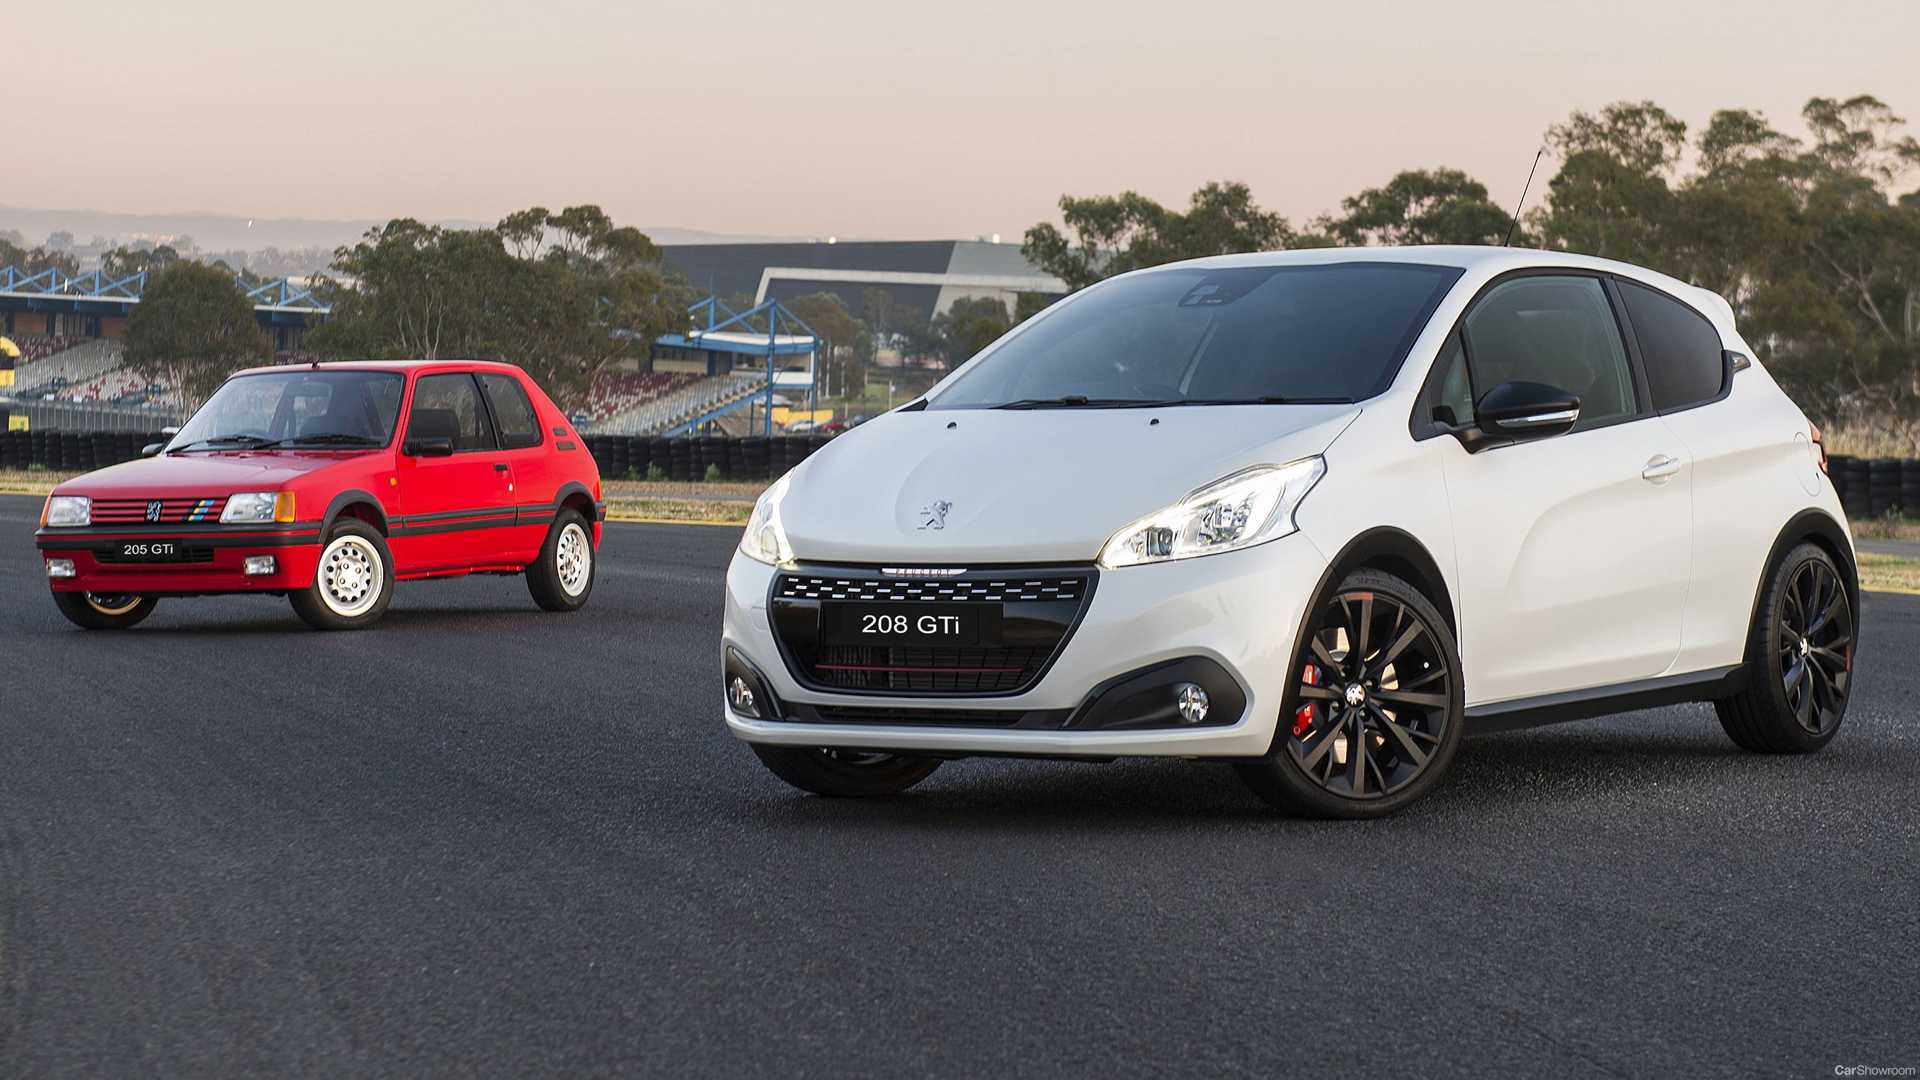 208 GTi Édition Définitive Launched, Tuned By Peugeot Sport